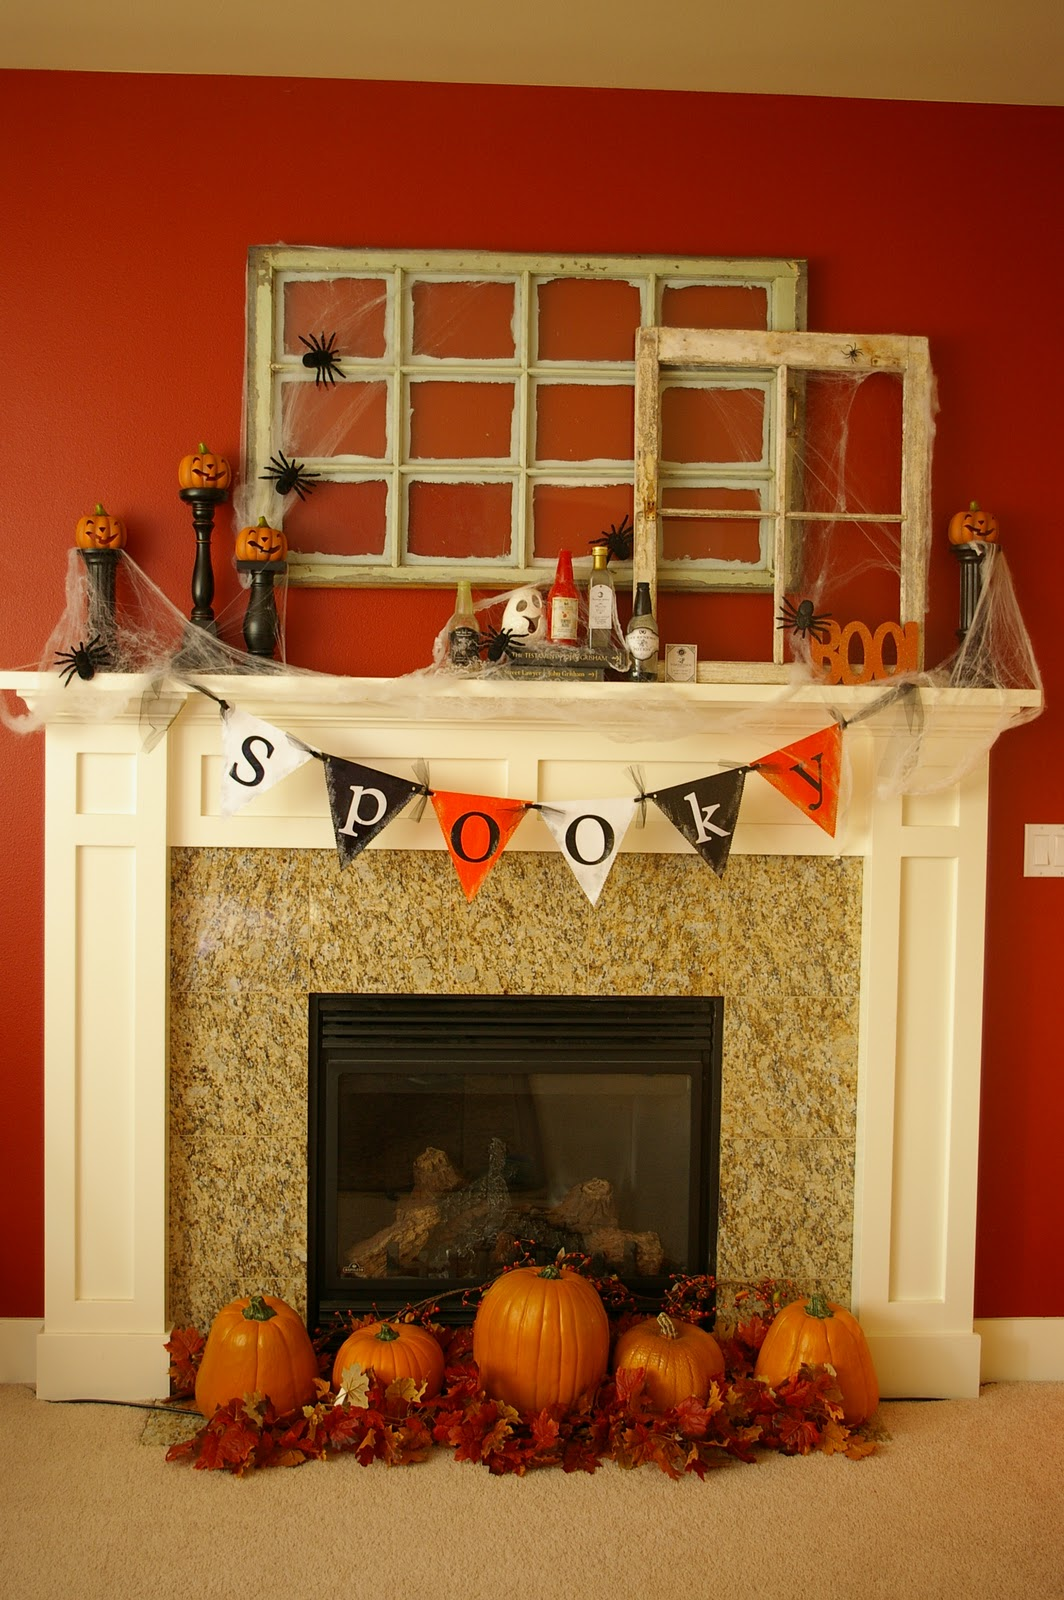 50 great halloween mantel decorating ideas digsdigs for Fire place mantel ideas